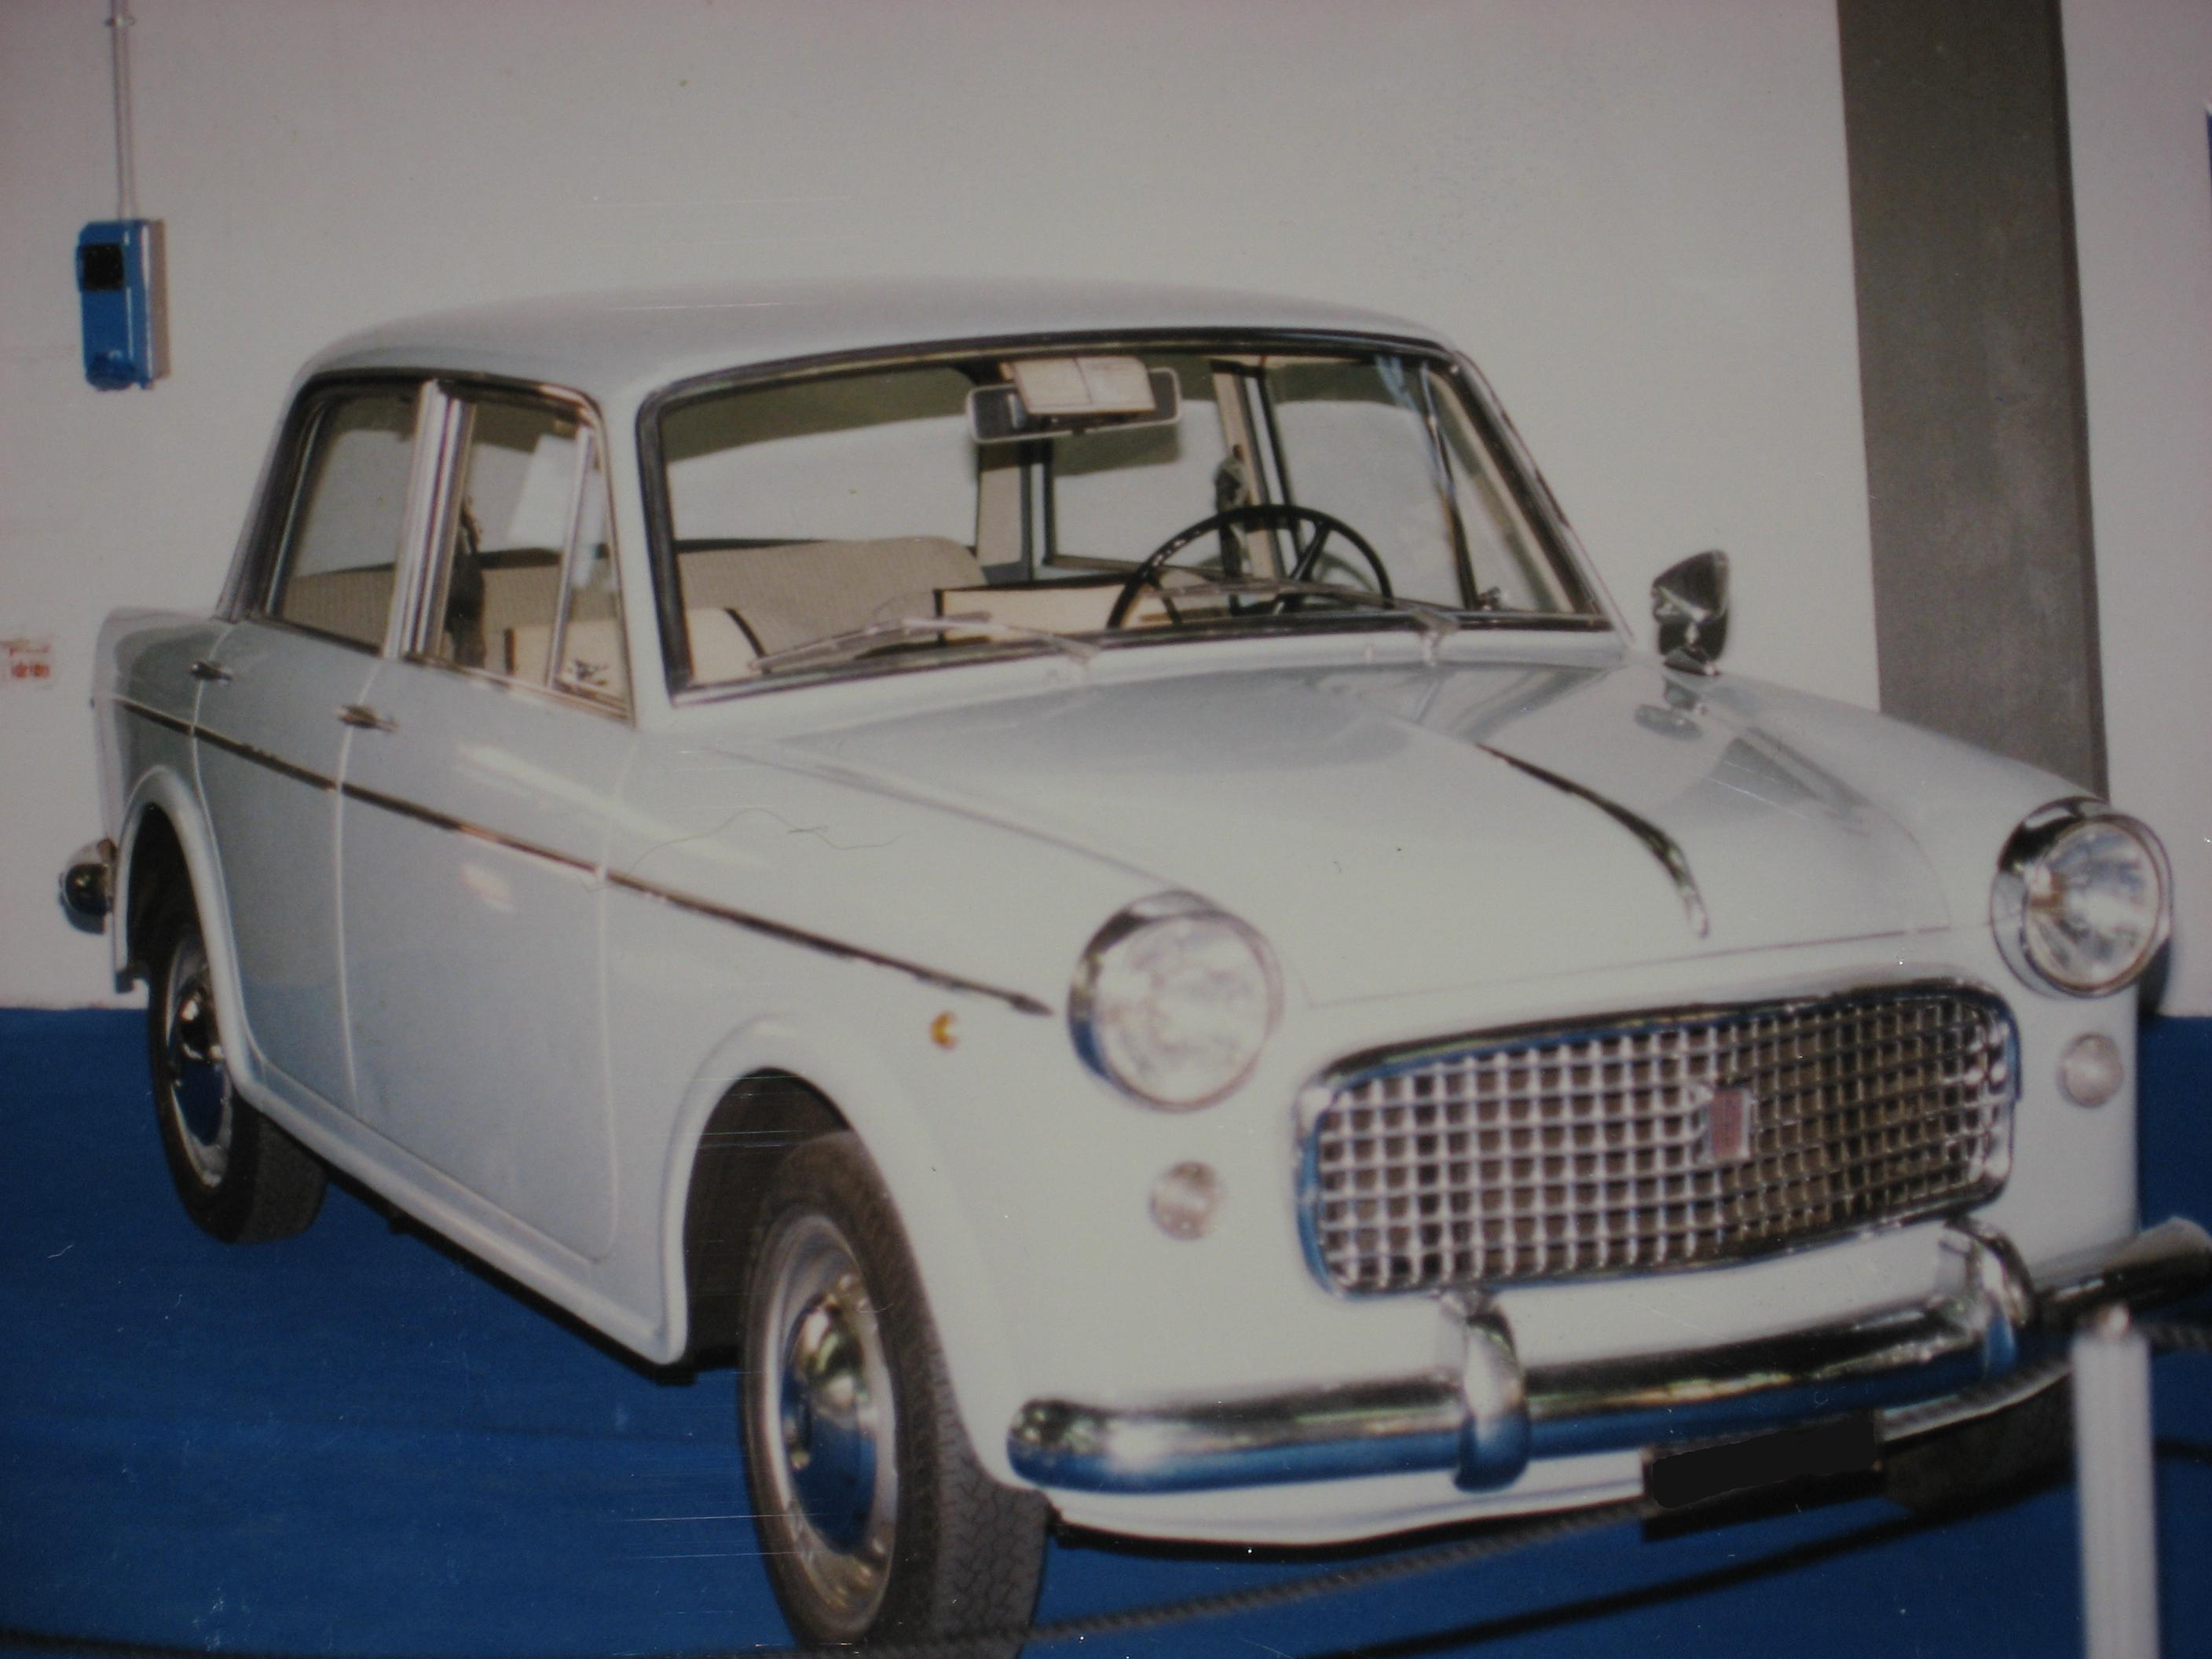 http://upload.wikimedia.org/wikipedia/commons/5/5c/Fiat_1100-Special.JPG